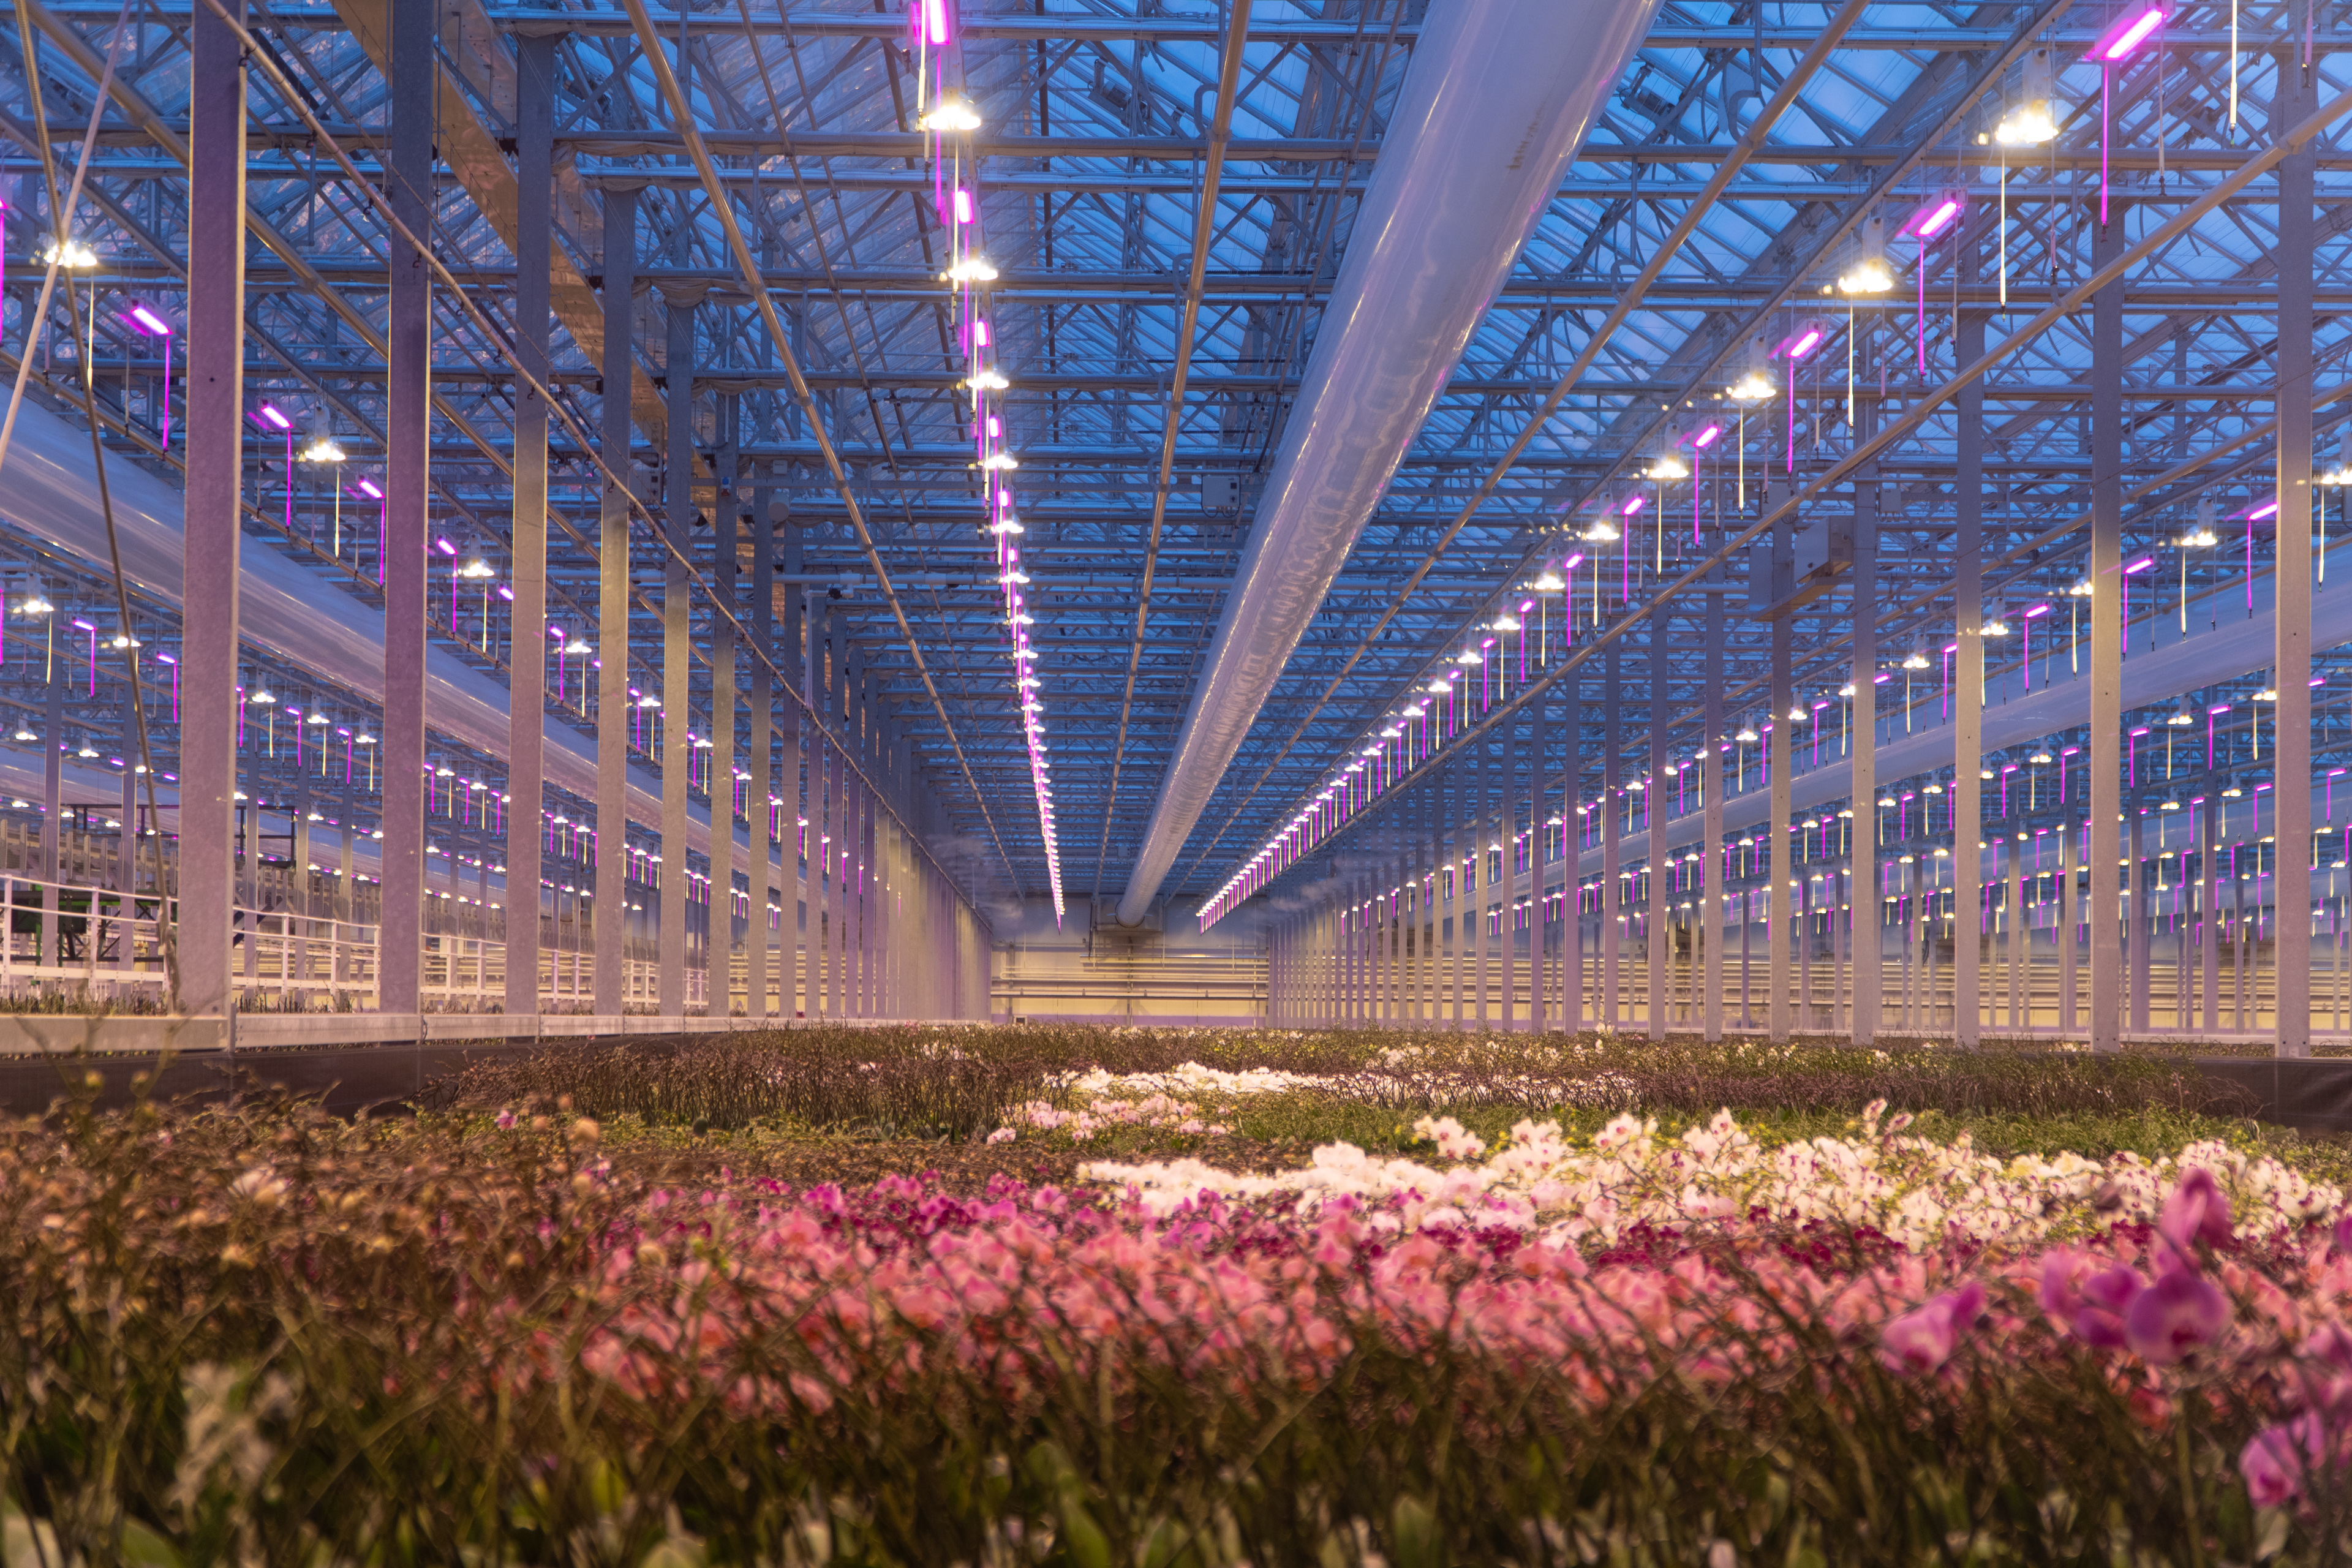 AppHarvest brings Dutch greenhouse expertise to Kentucky